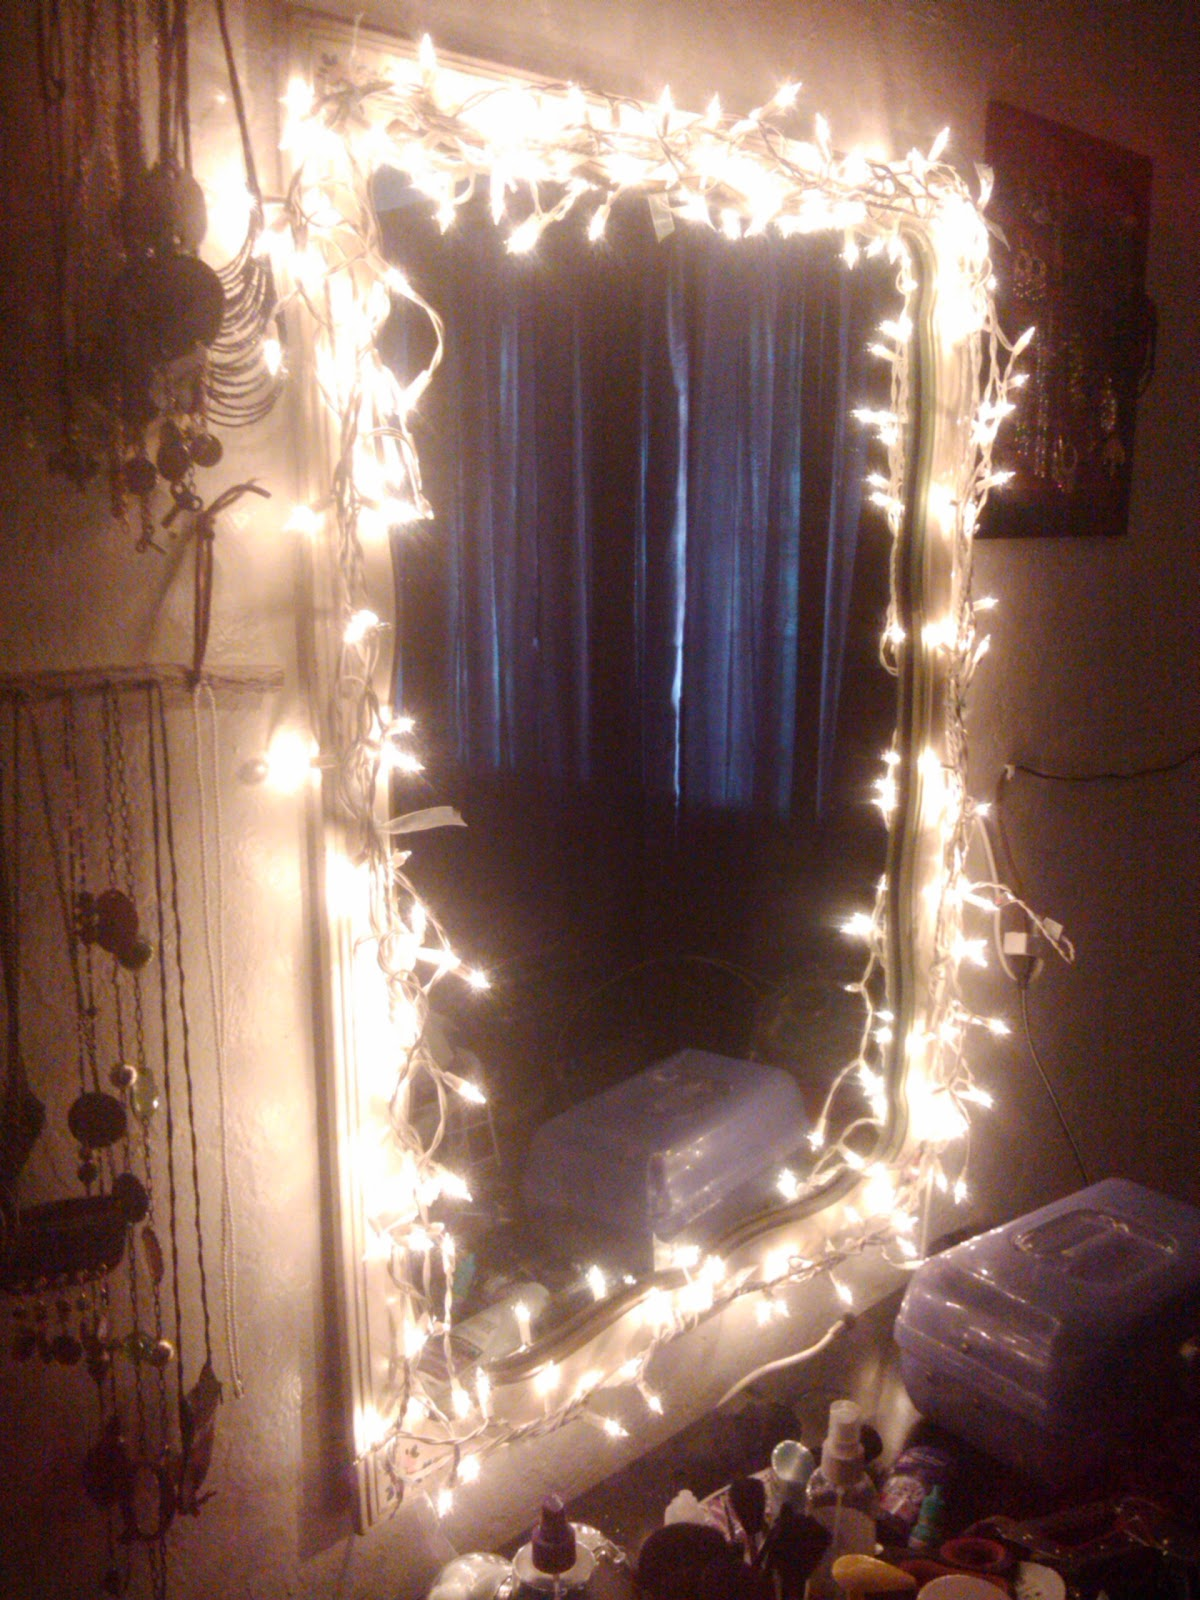 Vanity Mirror With Lights Around It : Easy diy light up vanity mirror.